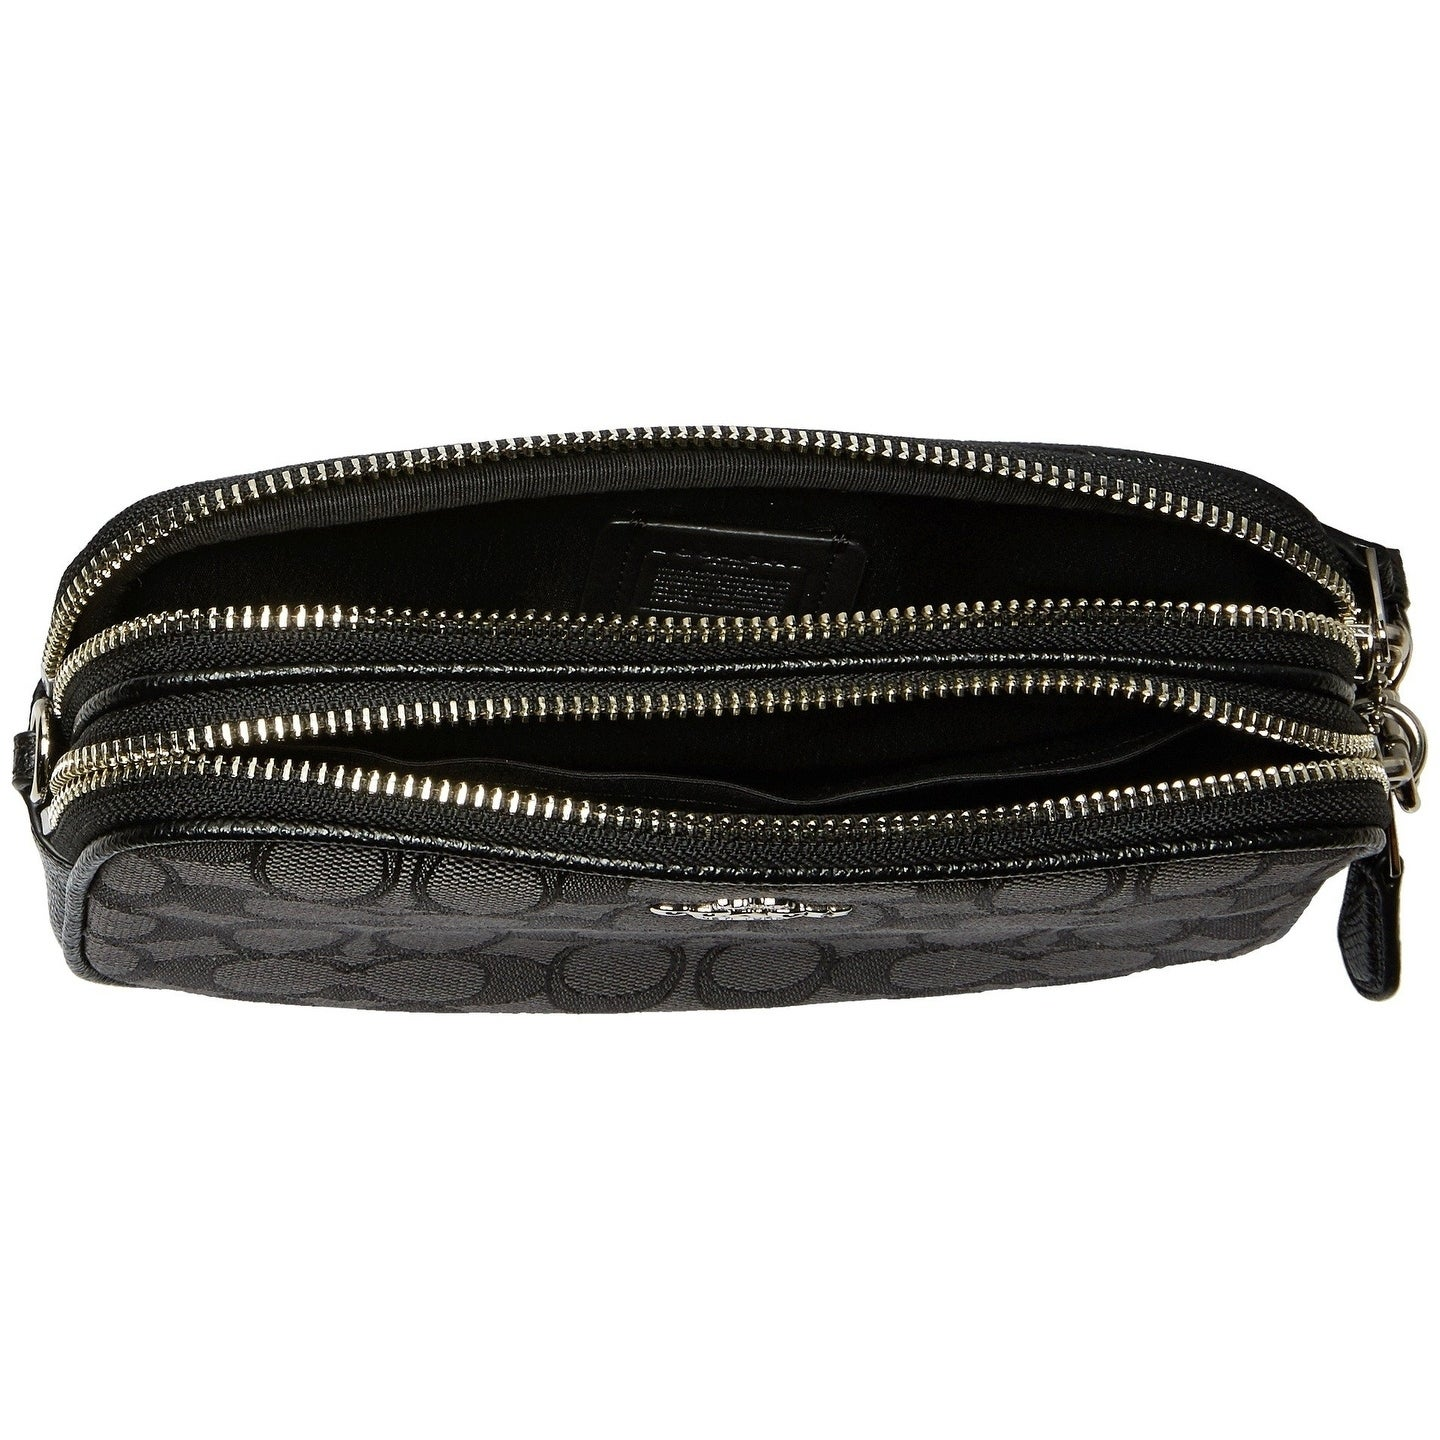 177fabe9f6b3 Shop Coach Signature Jacquard Crossbody - On Sale - Free Shipping Today -  Overstock - 21371045